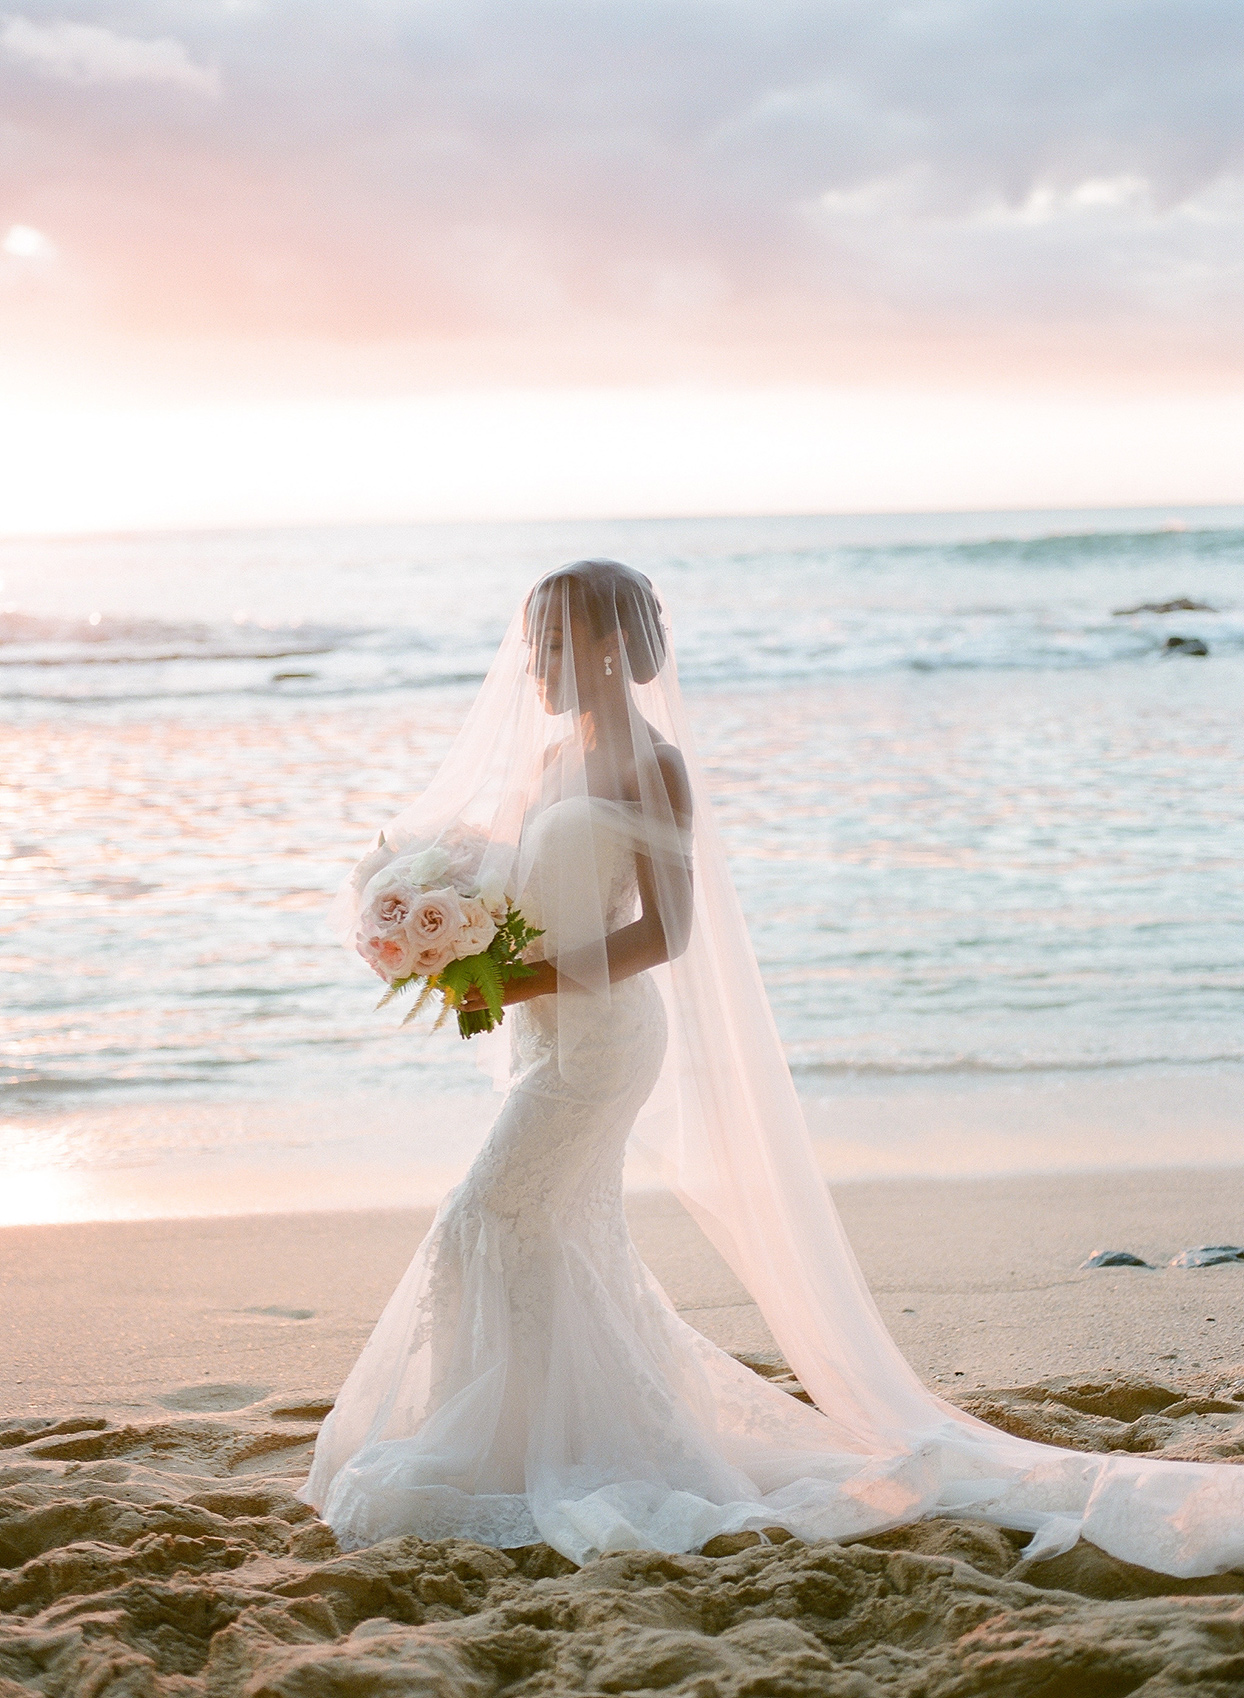 vanessa nathan wedding bride in white dress on beach at sunset